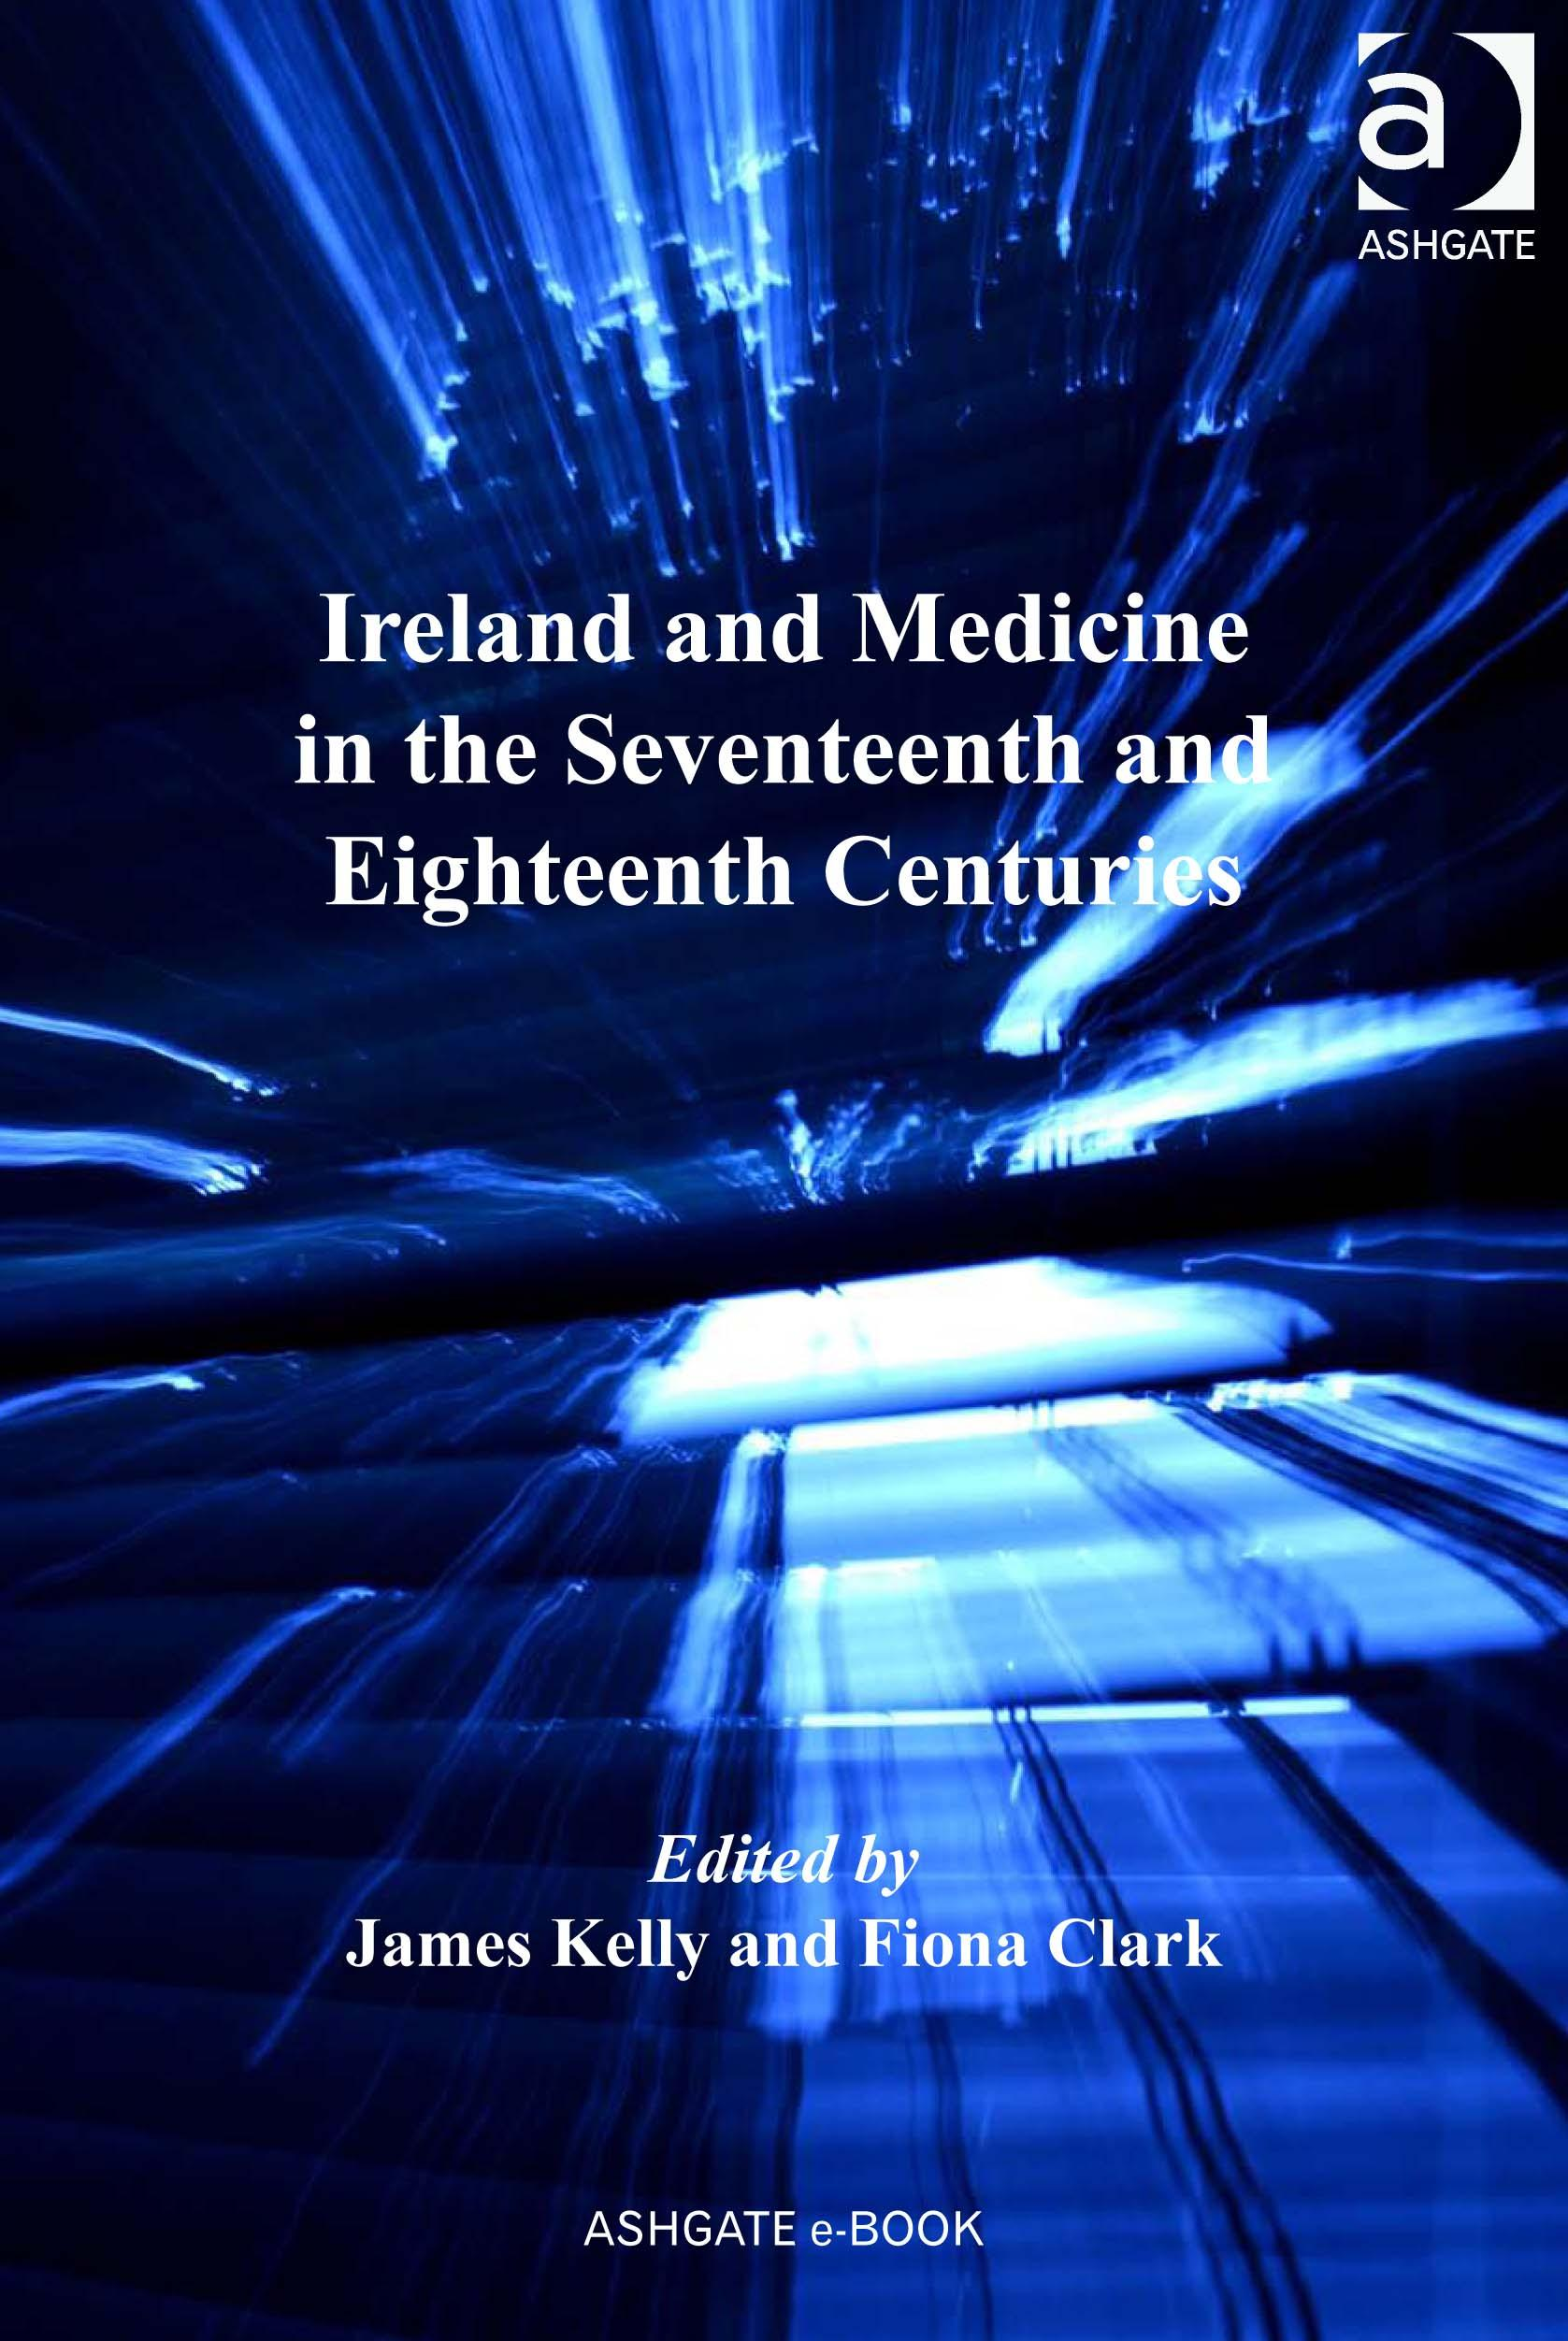 Ireland and Medicine in the Seventeenth and Eighteenth Centuries EB9780754697886